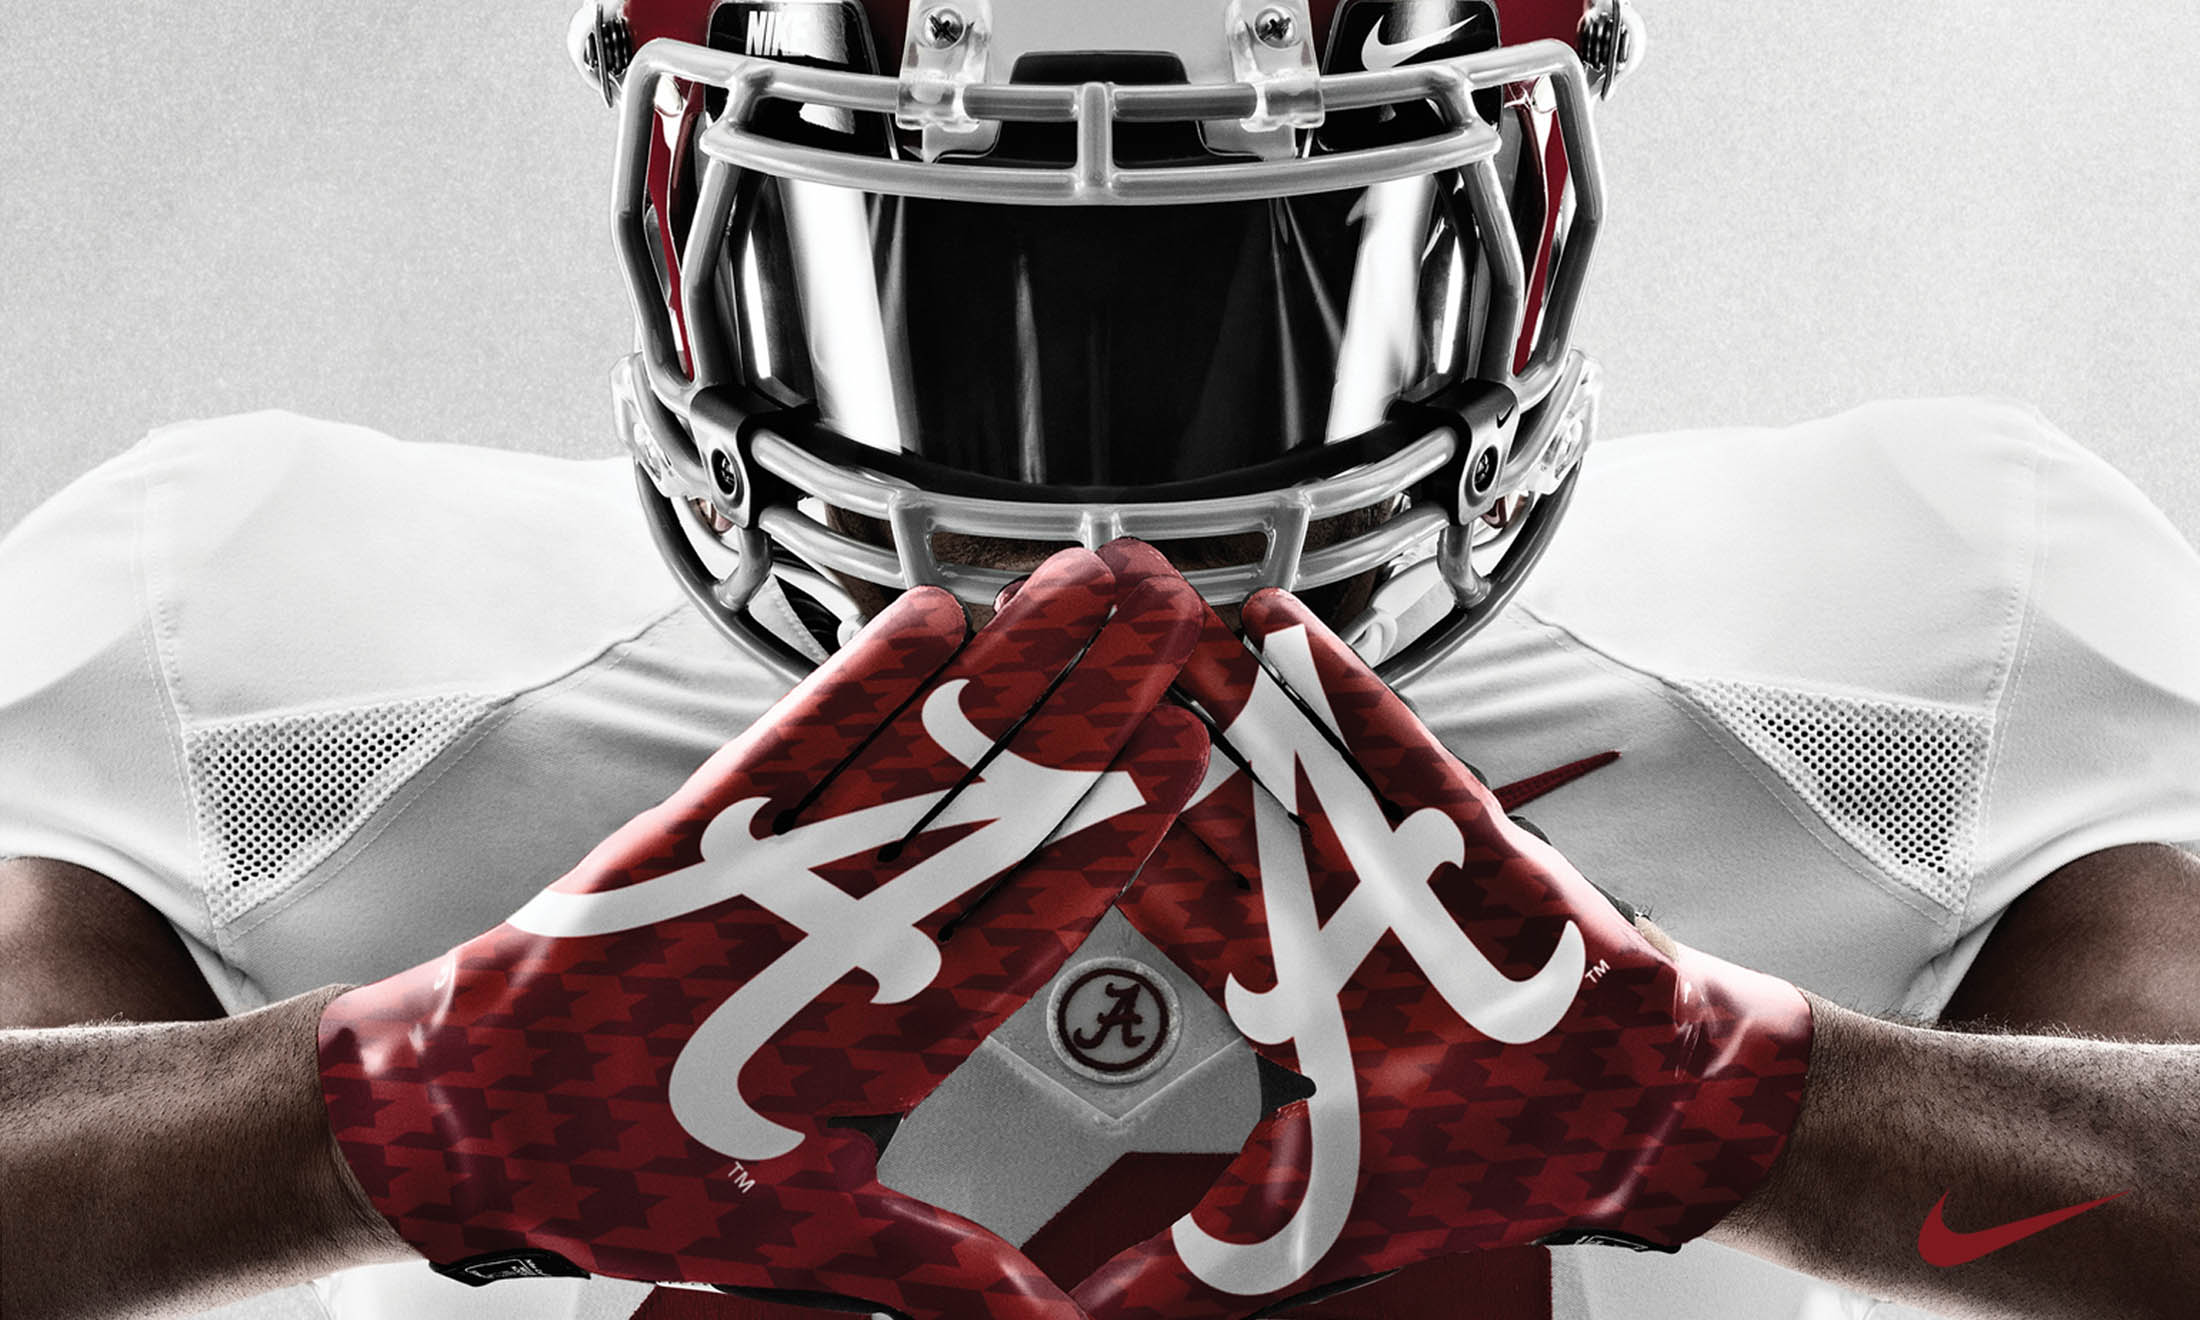 Alabama Crimson Tide Nike Wallpaper Alabama crimson tide nike football 2200x1320